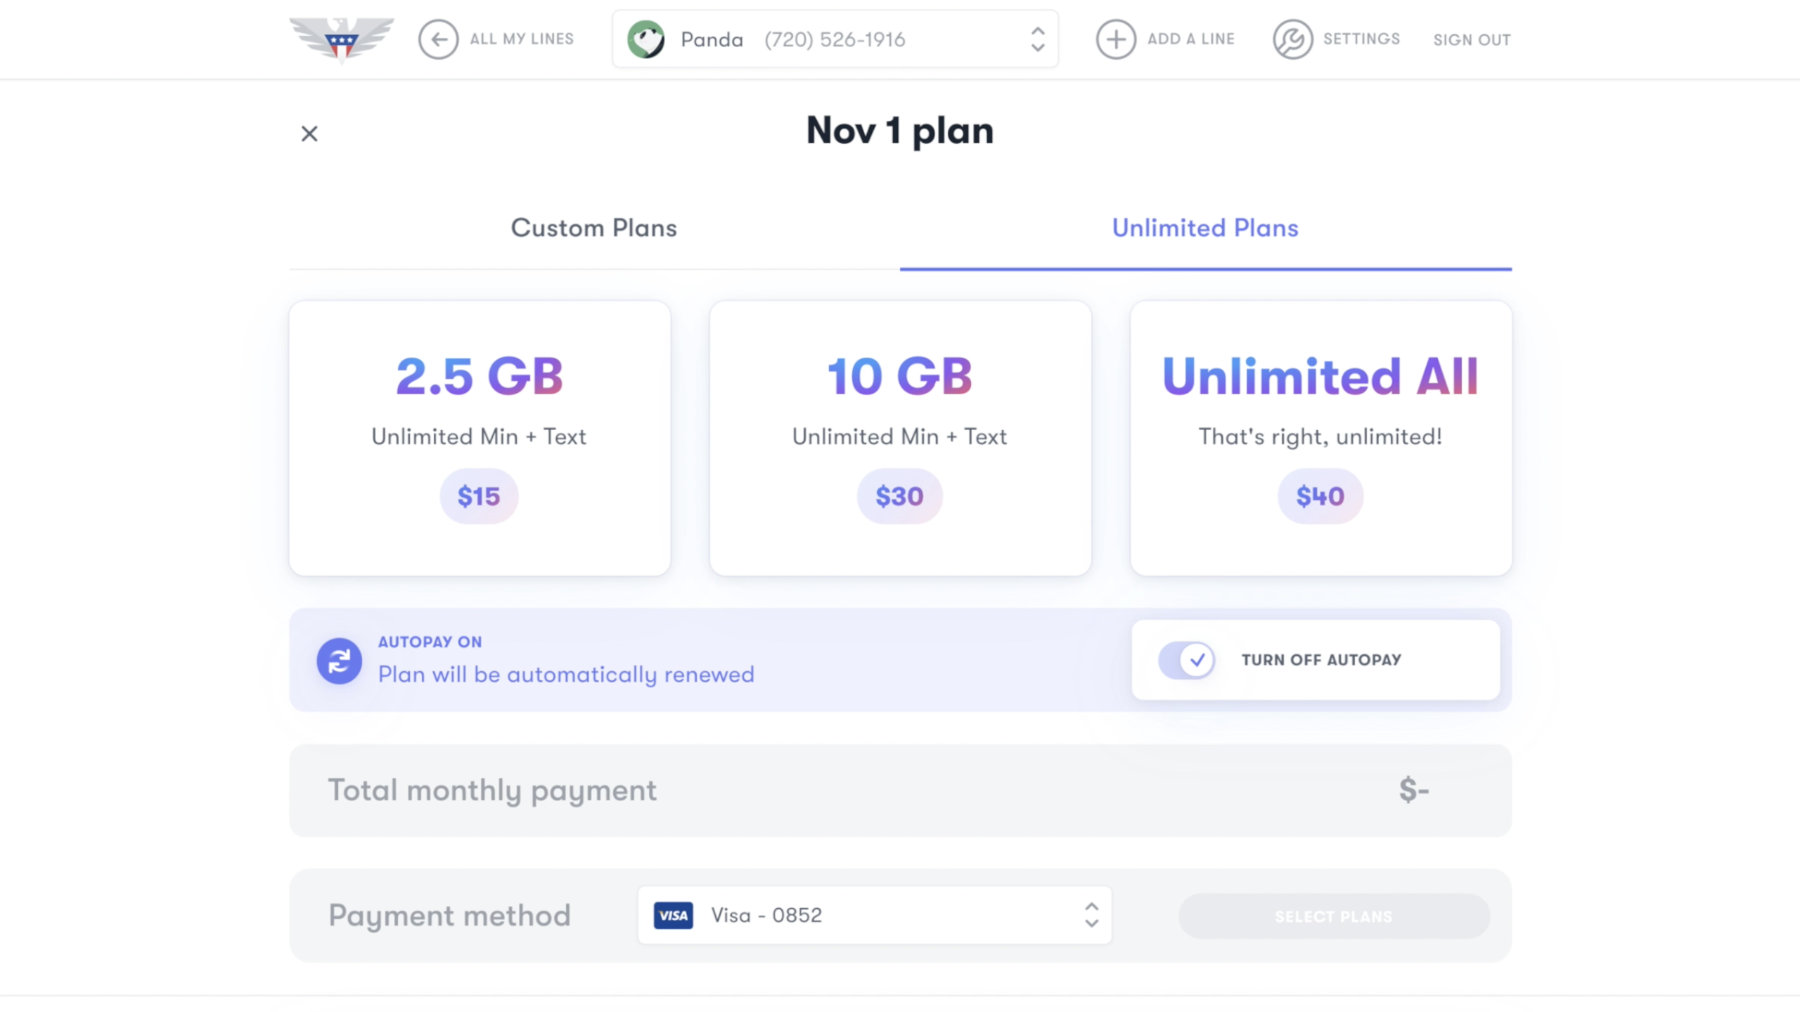 US Mobile's Unlimited plans include 2.5GB for $15, 10GB for $30, and Unlimited All for $40